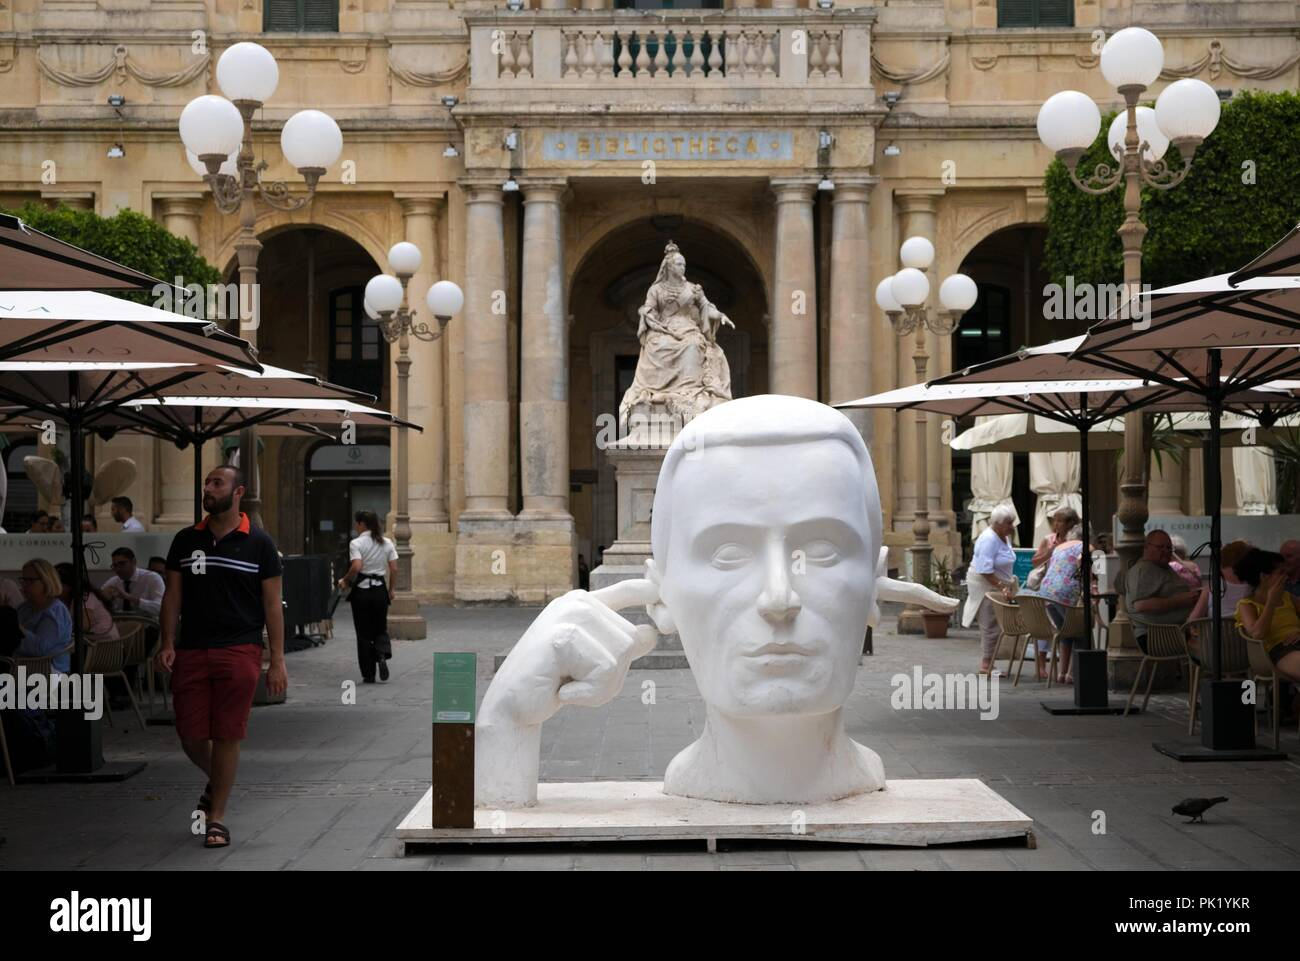 Artwork placed in the Republic Square in the city of Valletta, in Malta, as part of the city's time as European Capital of Culture 2018 (ECoC). - Stock Image